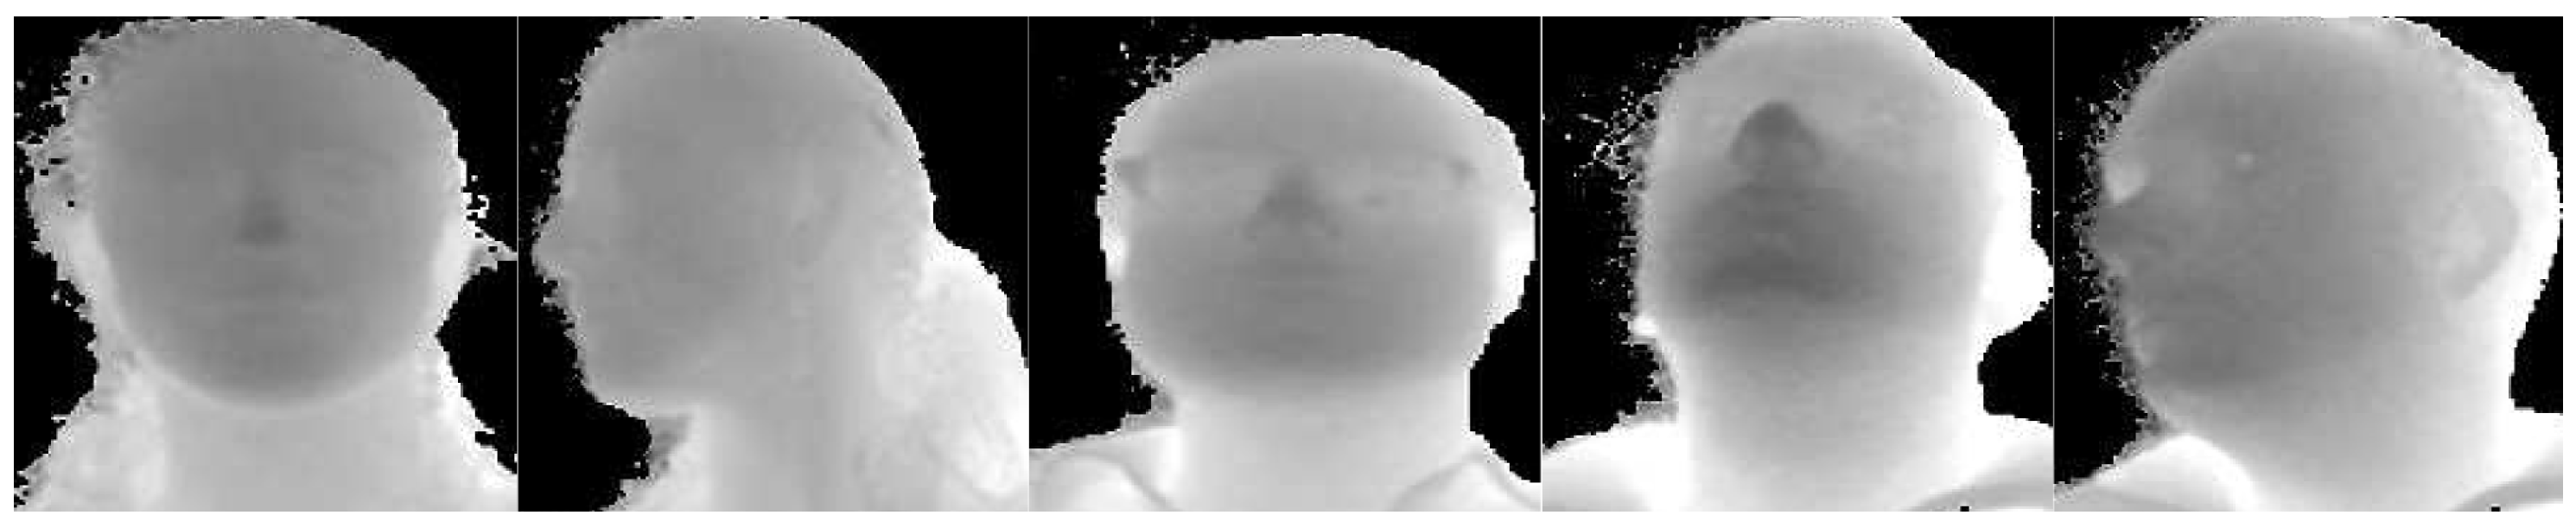 Sensors | Free Full-Text | Driver Face Verification with